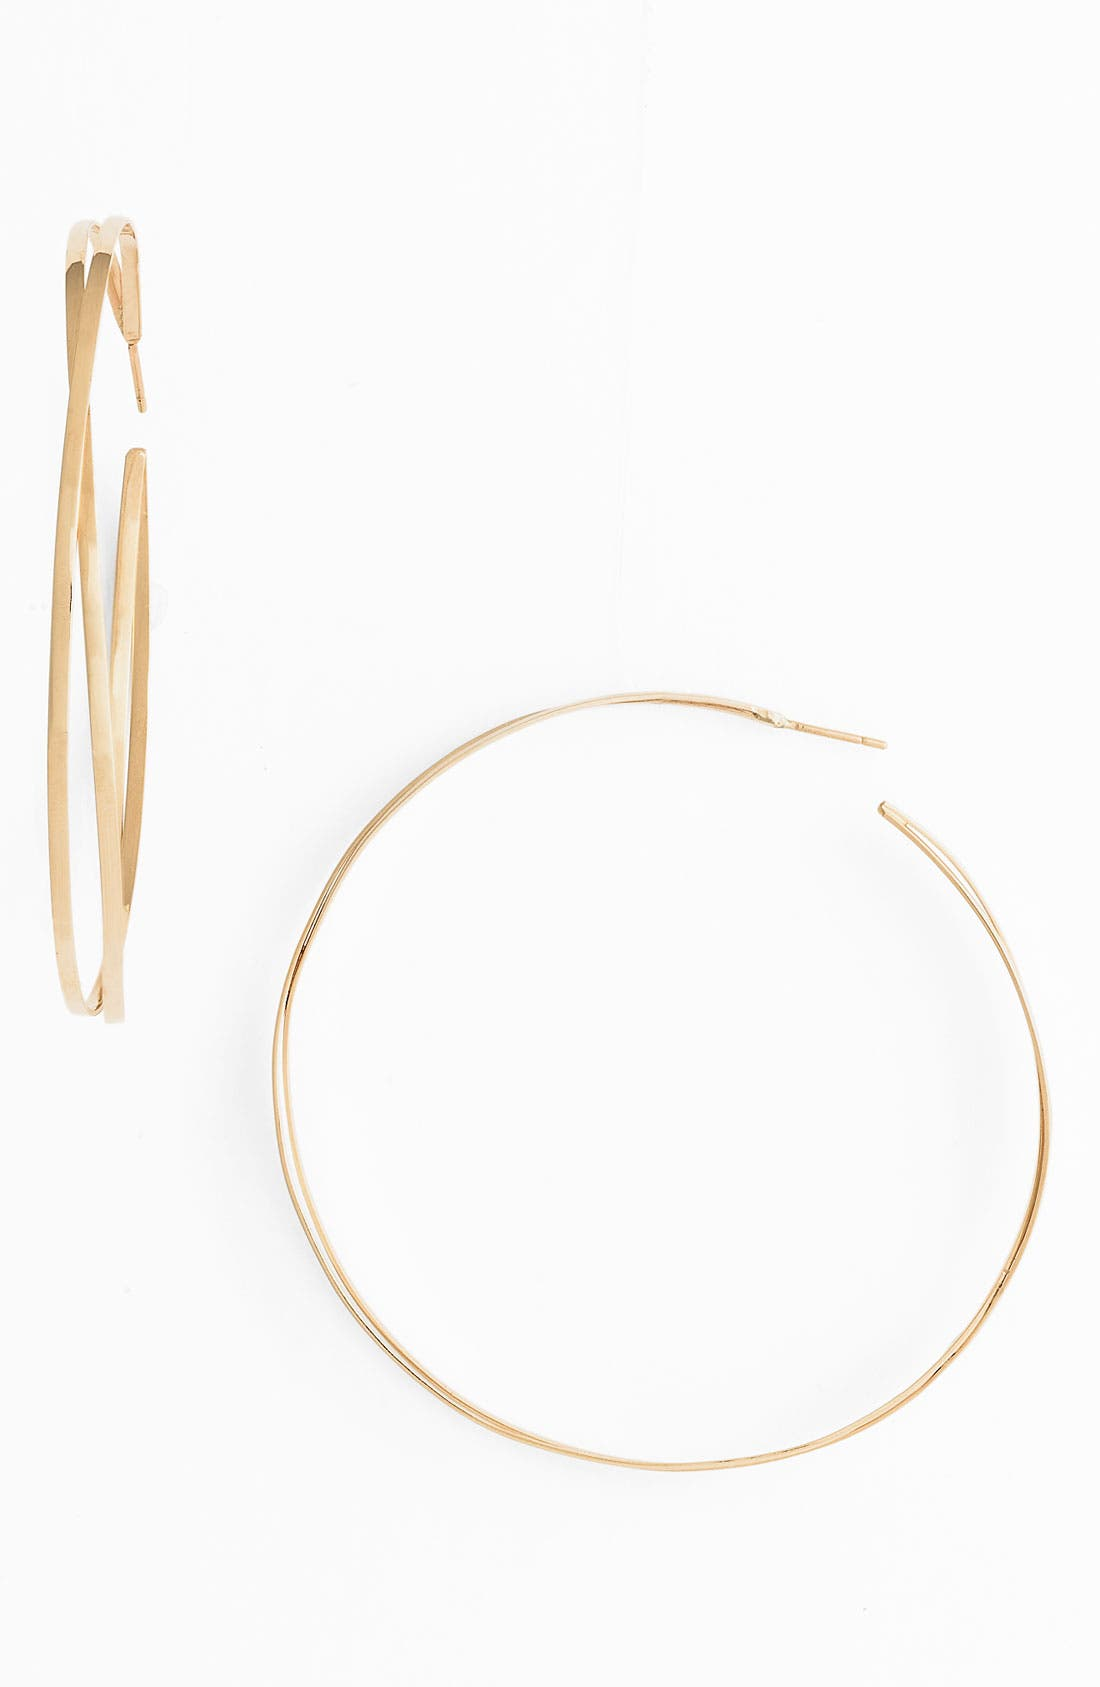 Main Image - Lana Jewelry 'Decades' Twisted Hoop Earrings